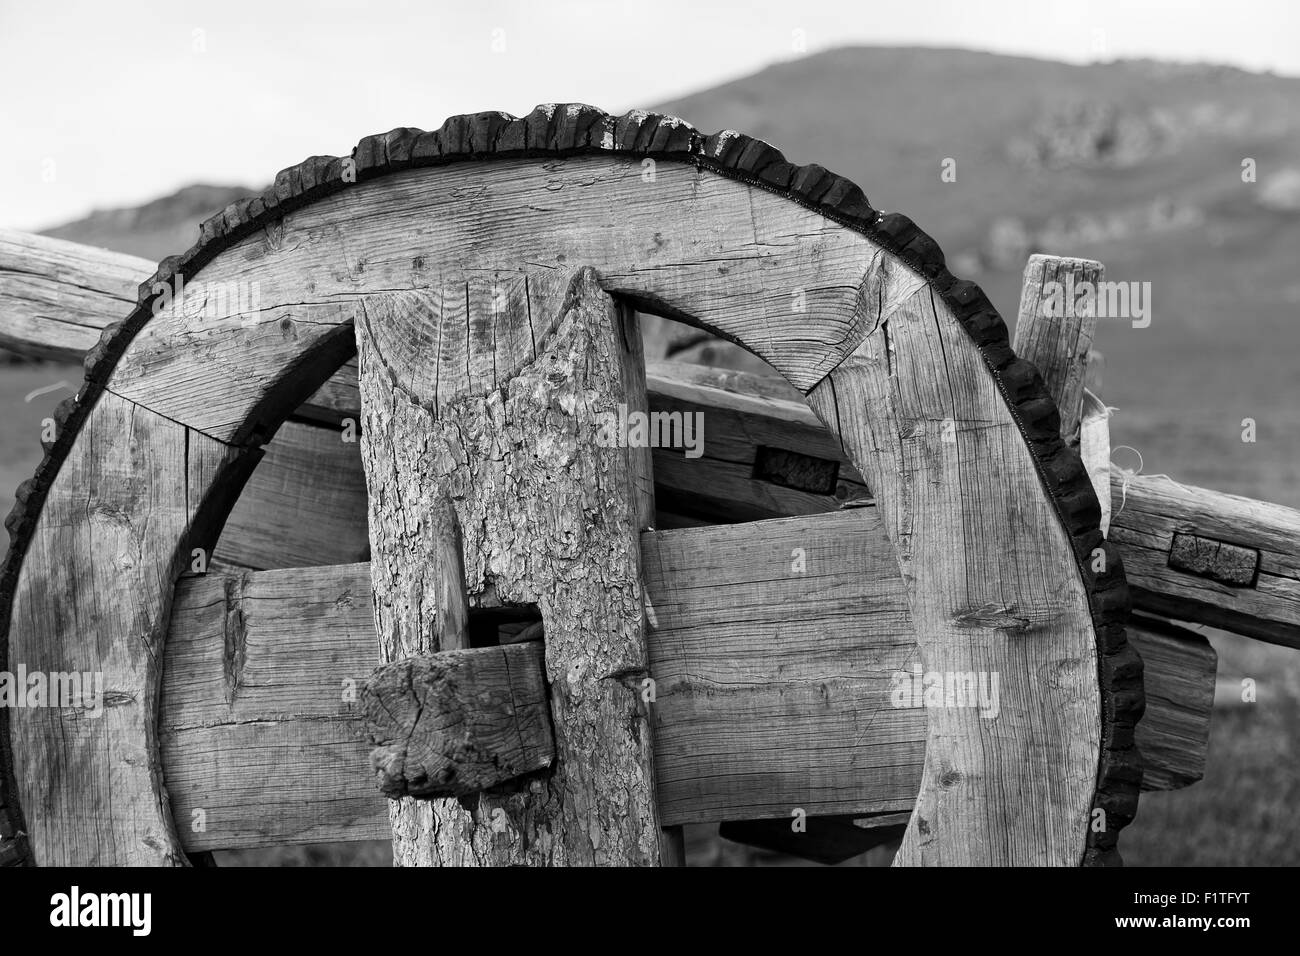 Old Wooden Wheel - Stock Image